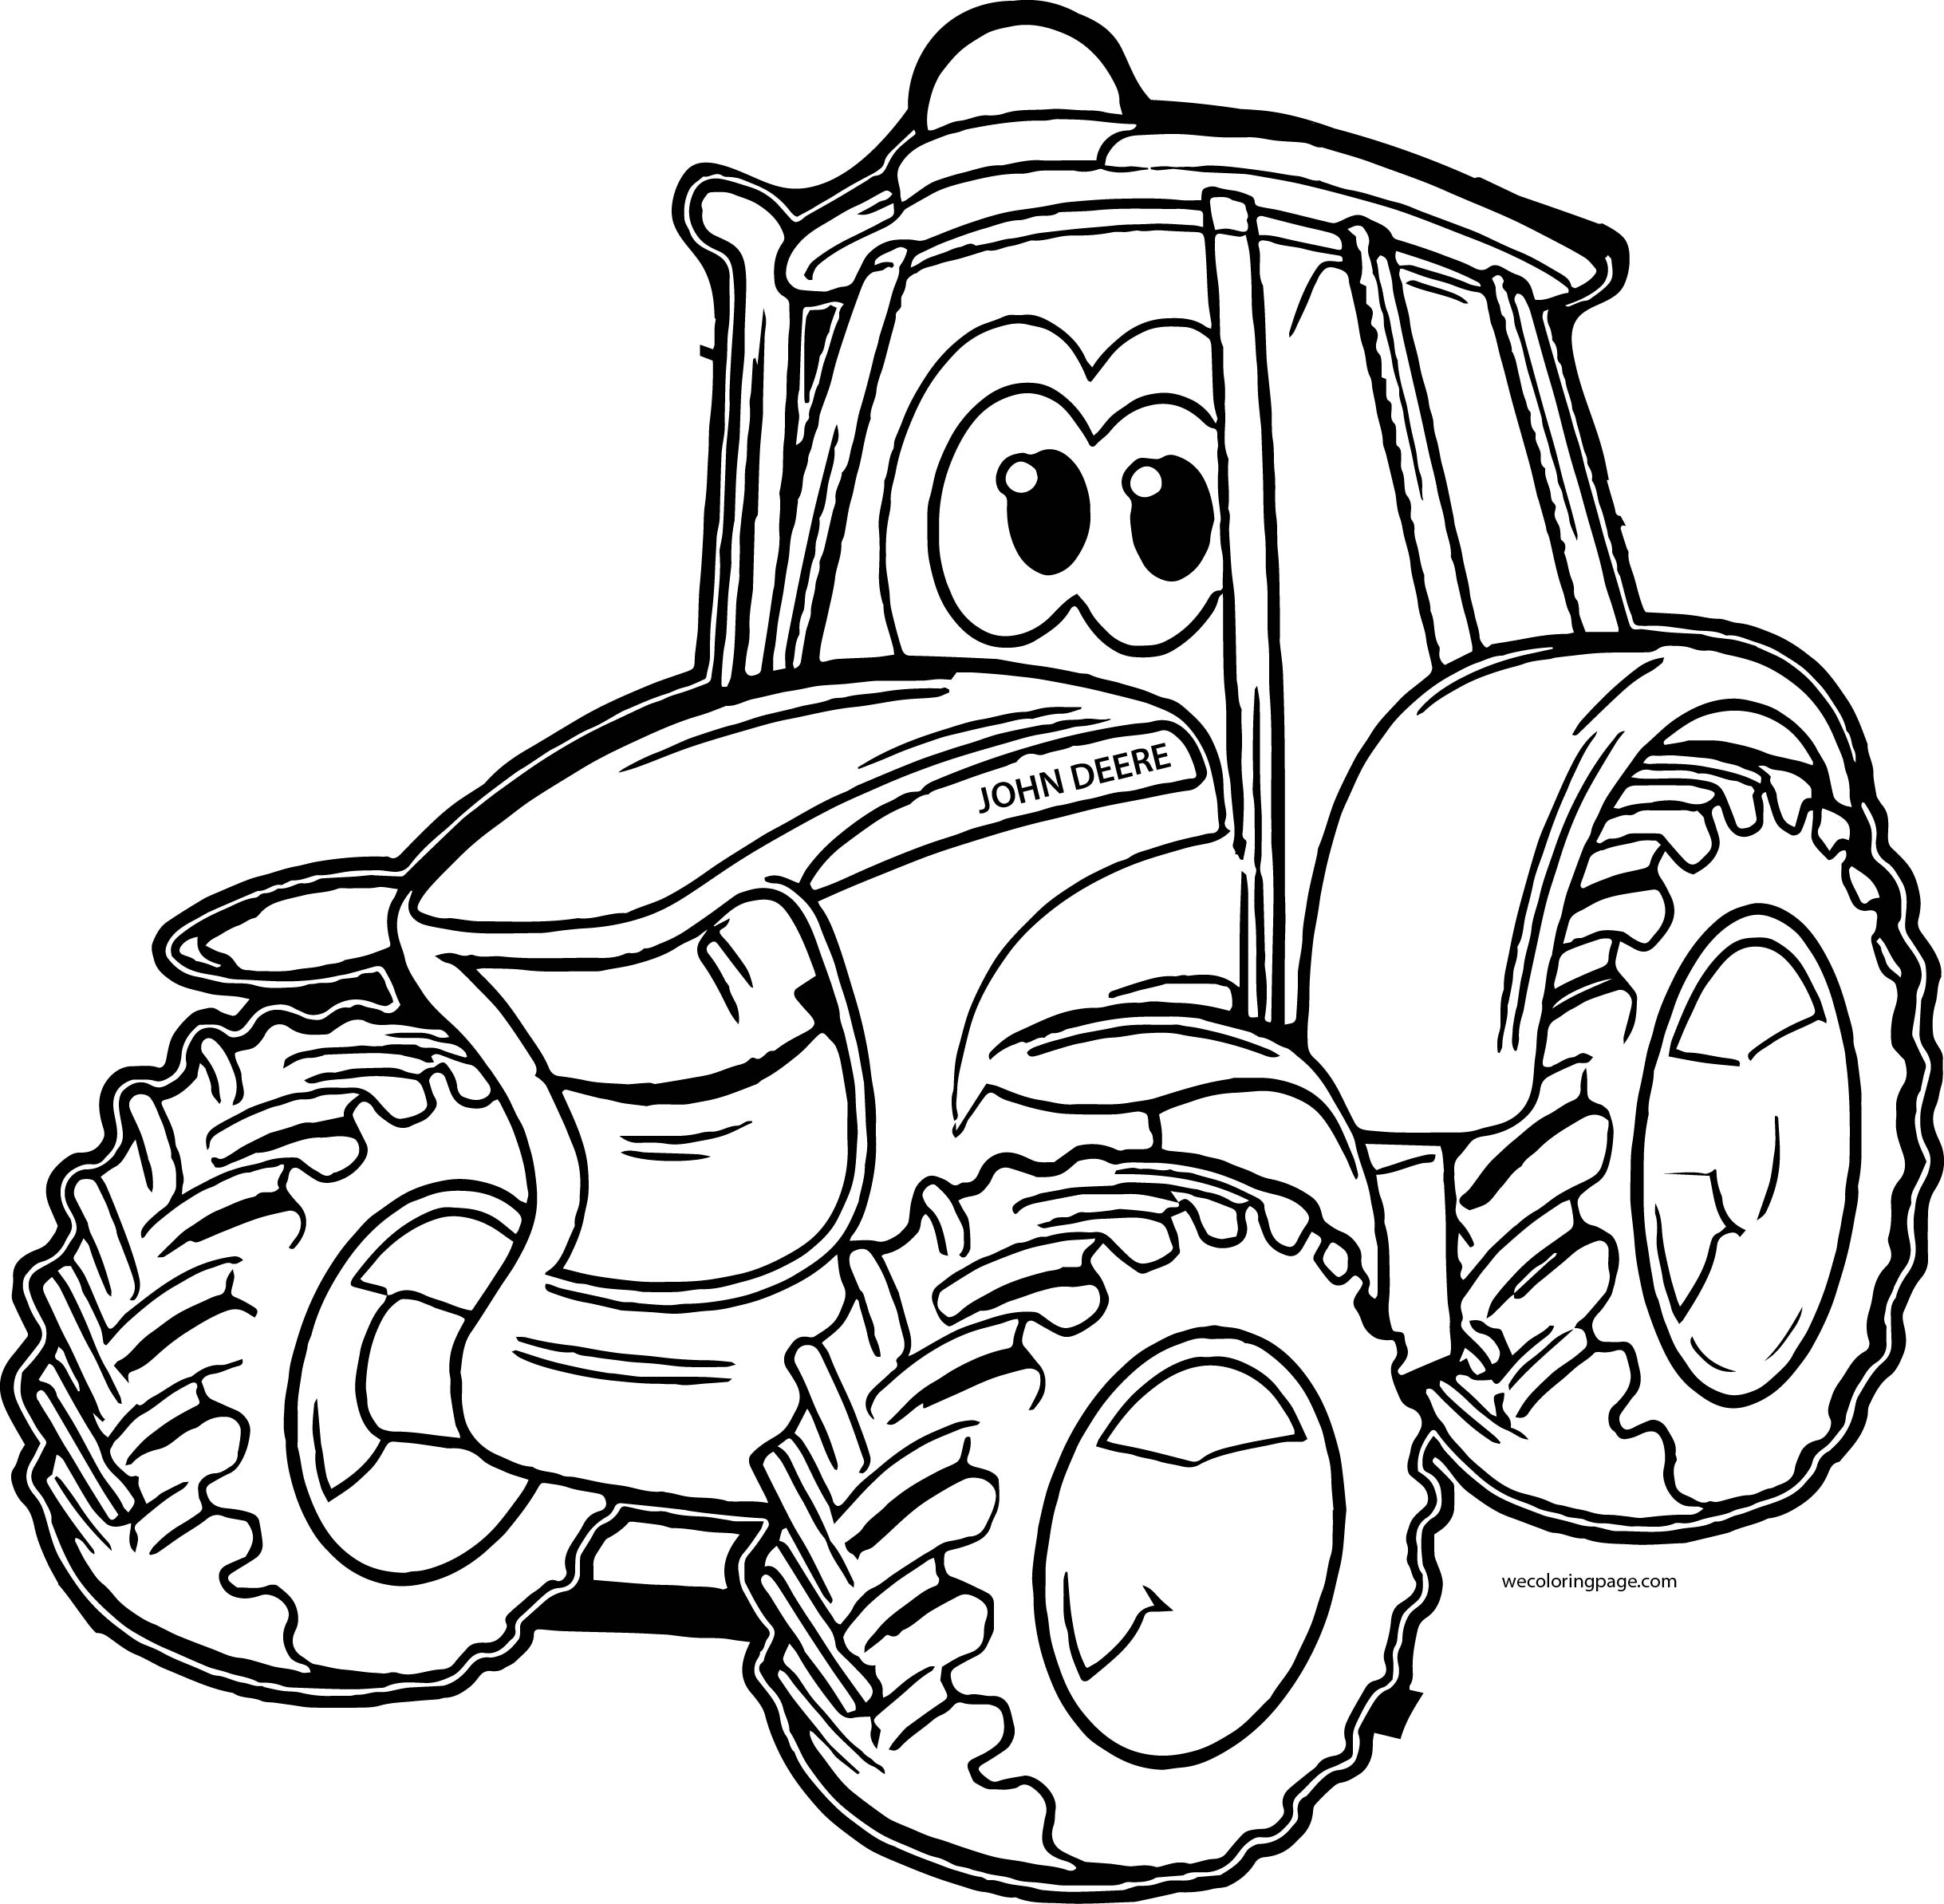 John johnny deere tractor coloring pages for Tractor coloring pages to print